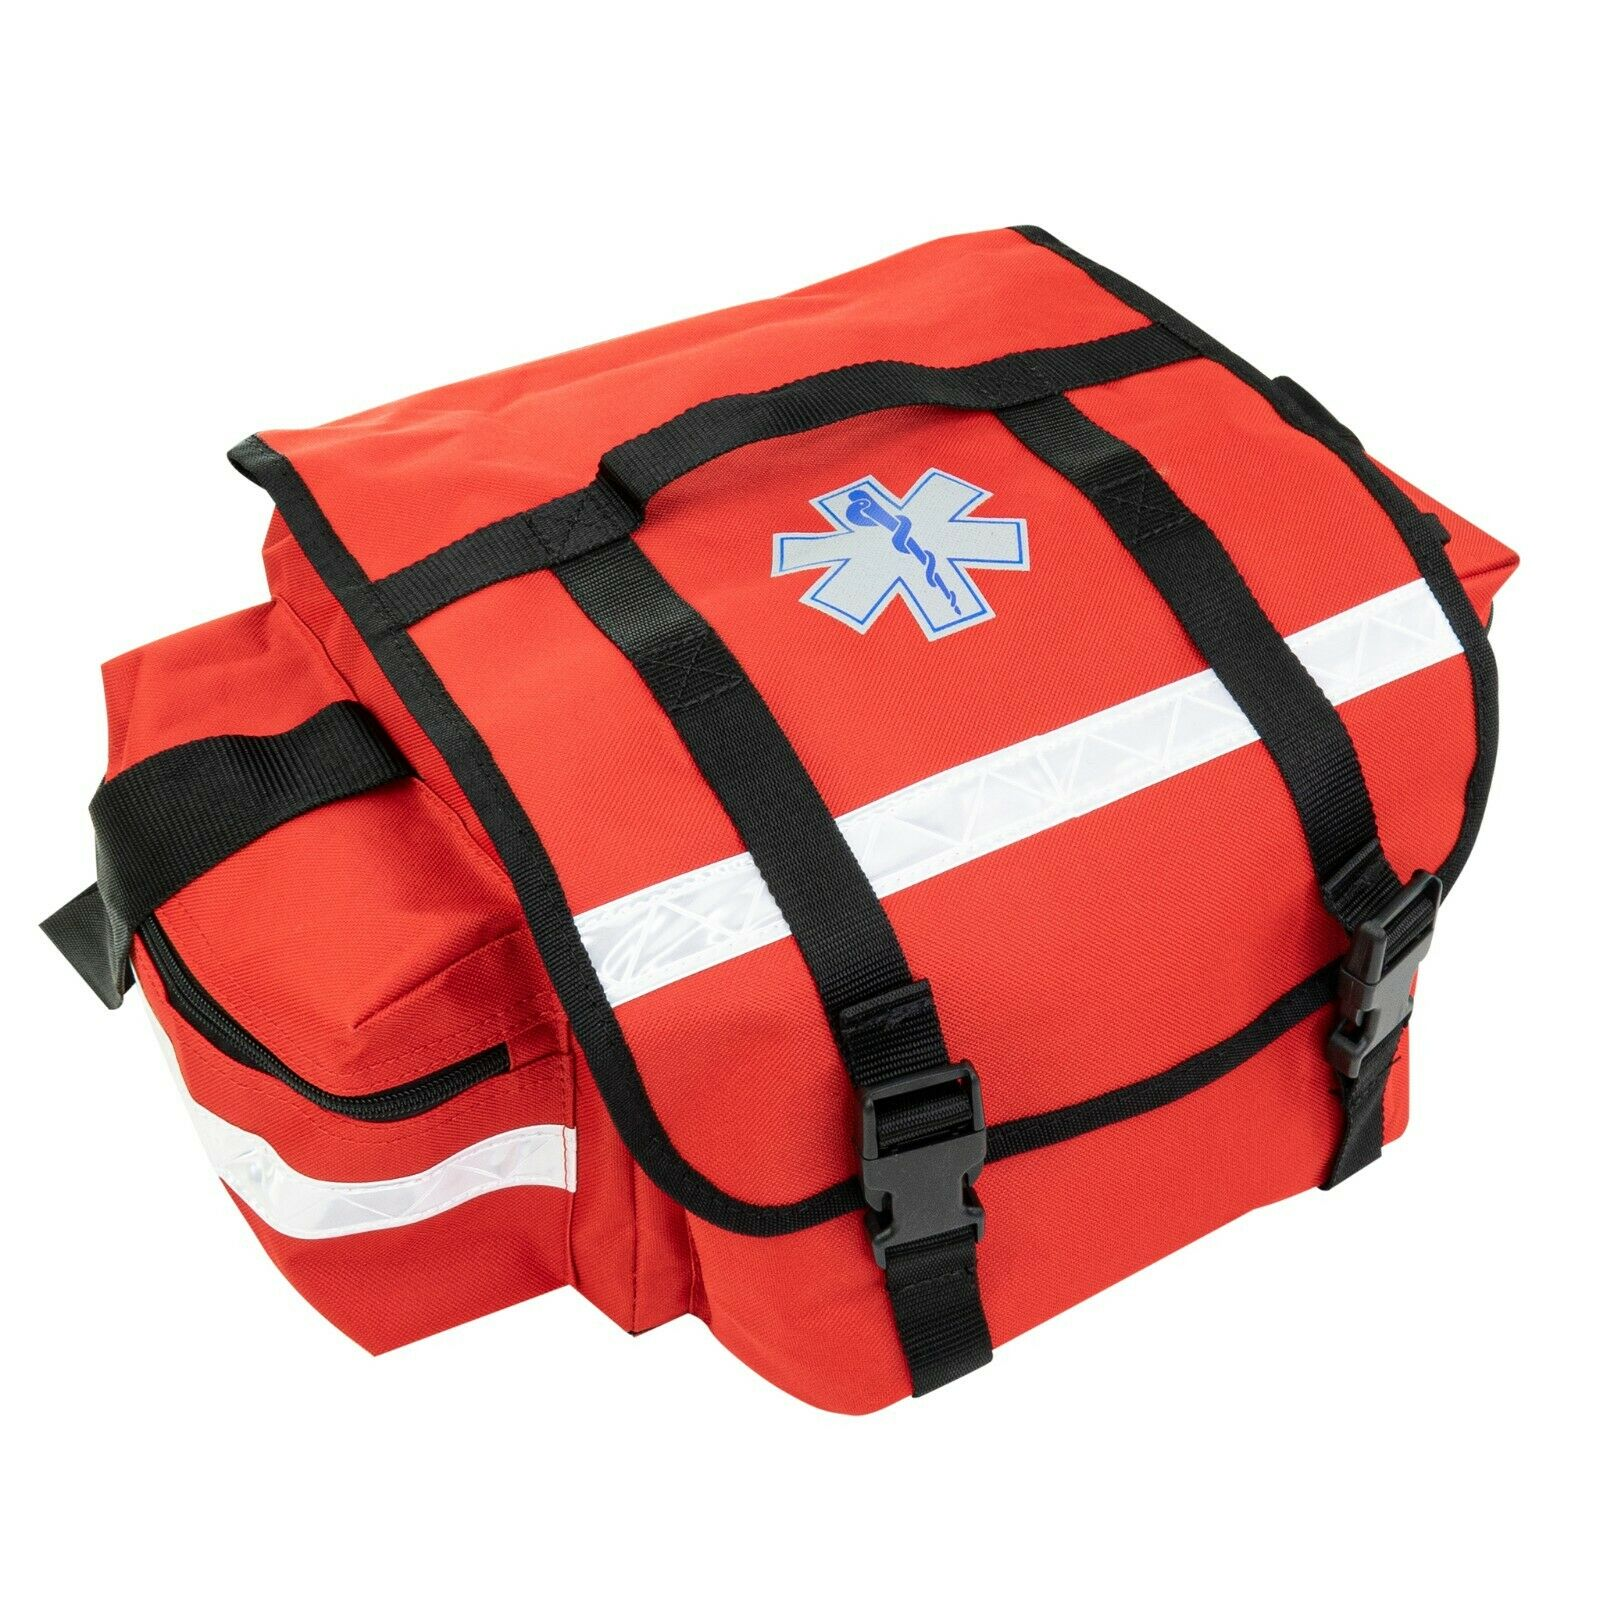 Best USED LINE2DESIGN FIRST AID BAG - MEDICAL SUPPLIES TRAUMA BAG WITH SHOULDER STRAP RED